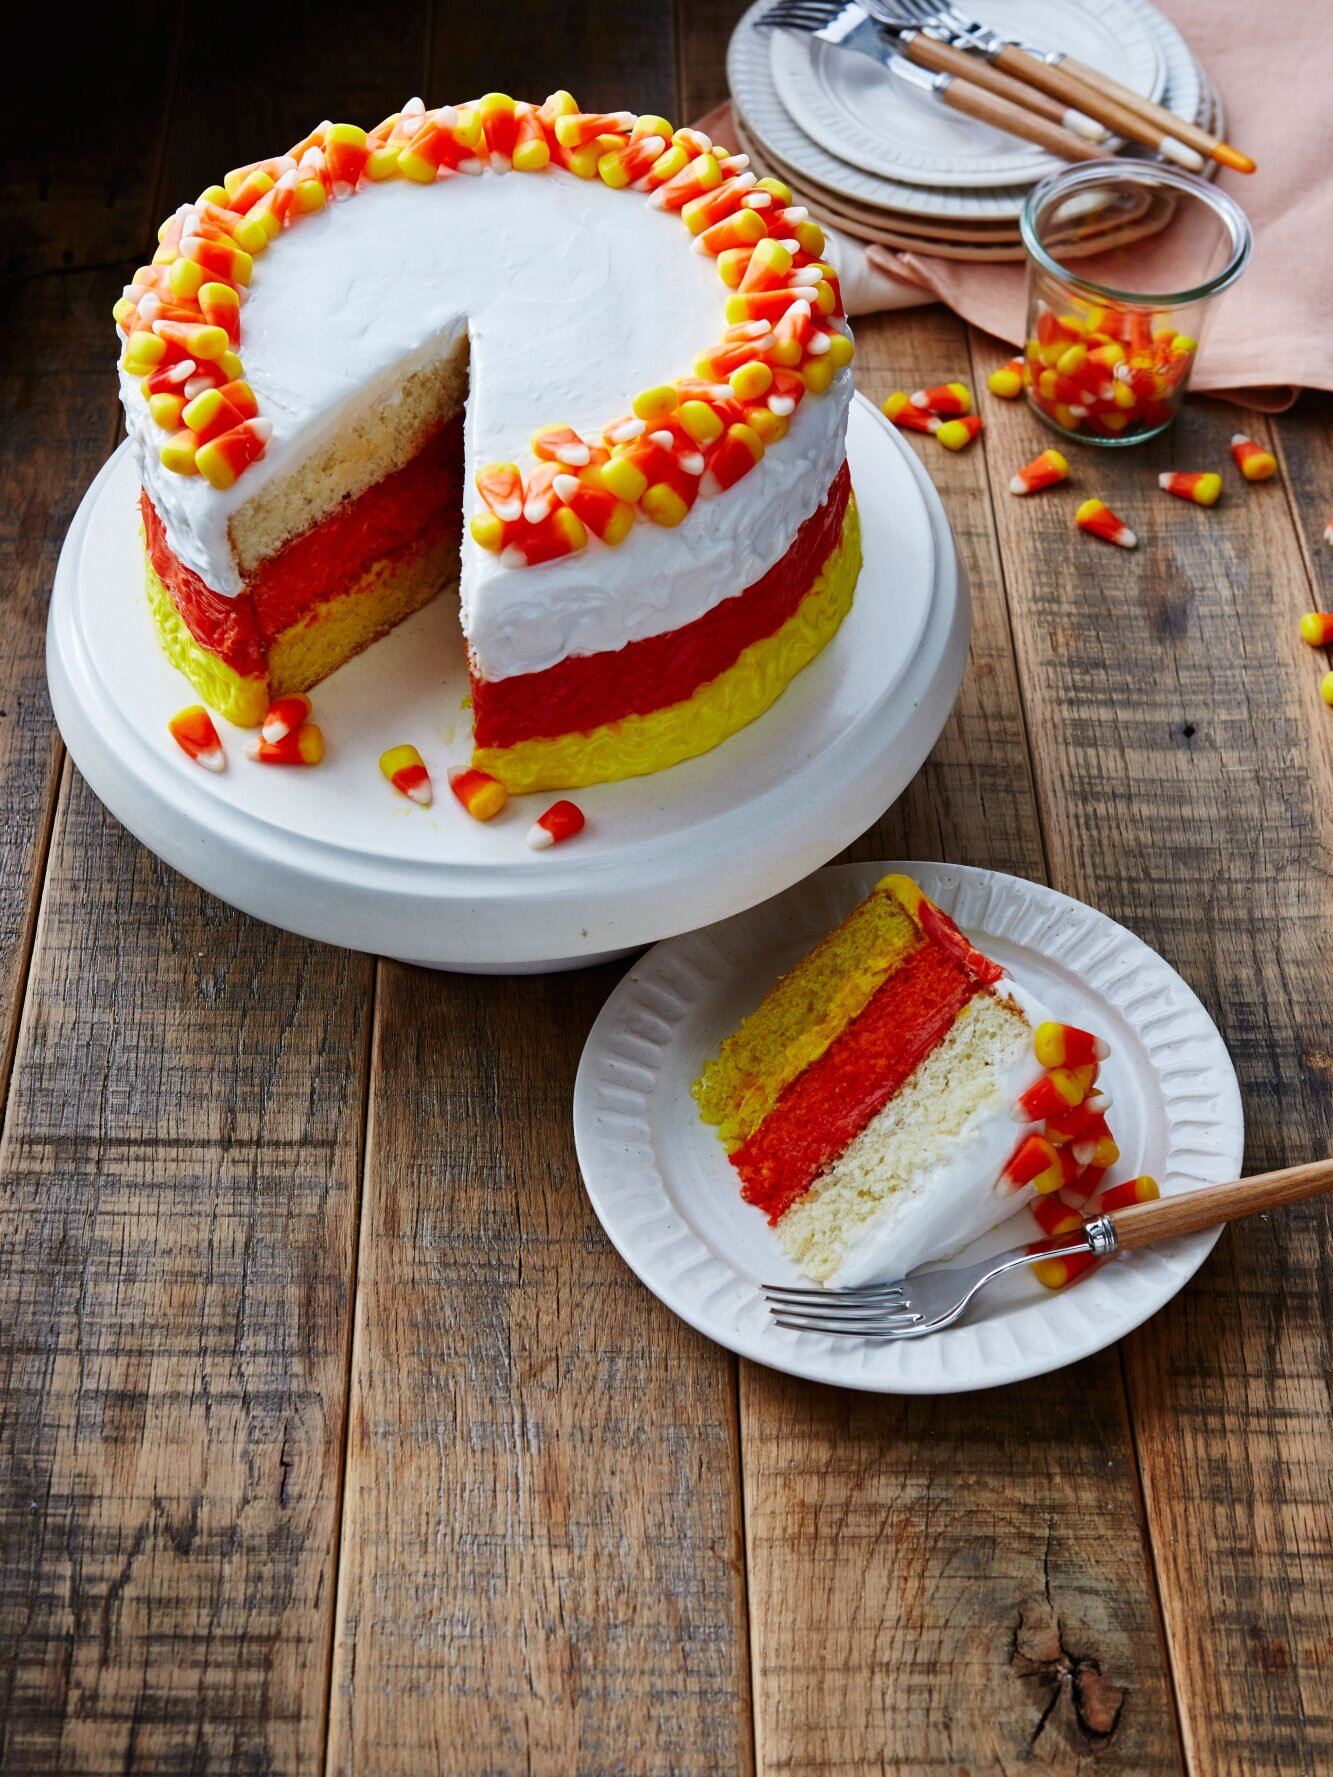 19 Halloween Cakes That Are Frightfully Delicious  Southern Living